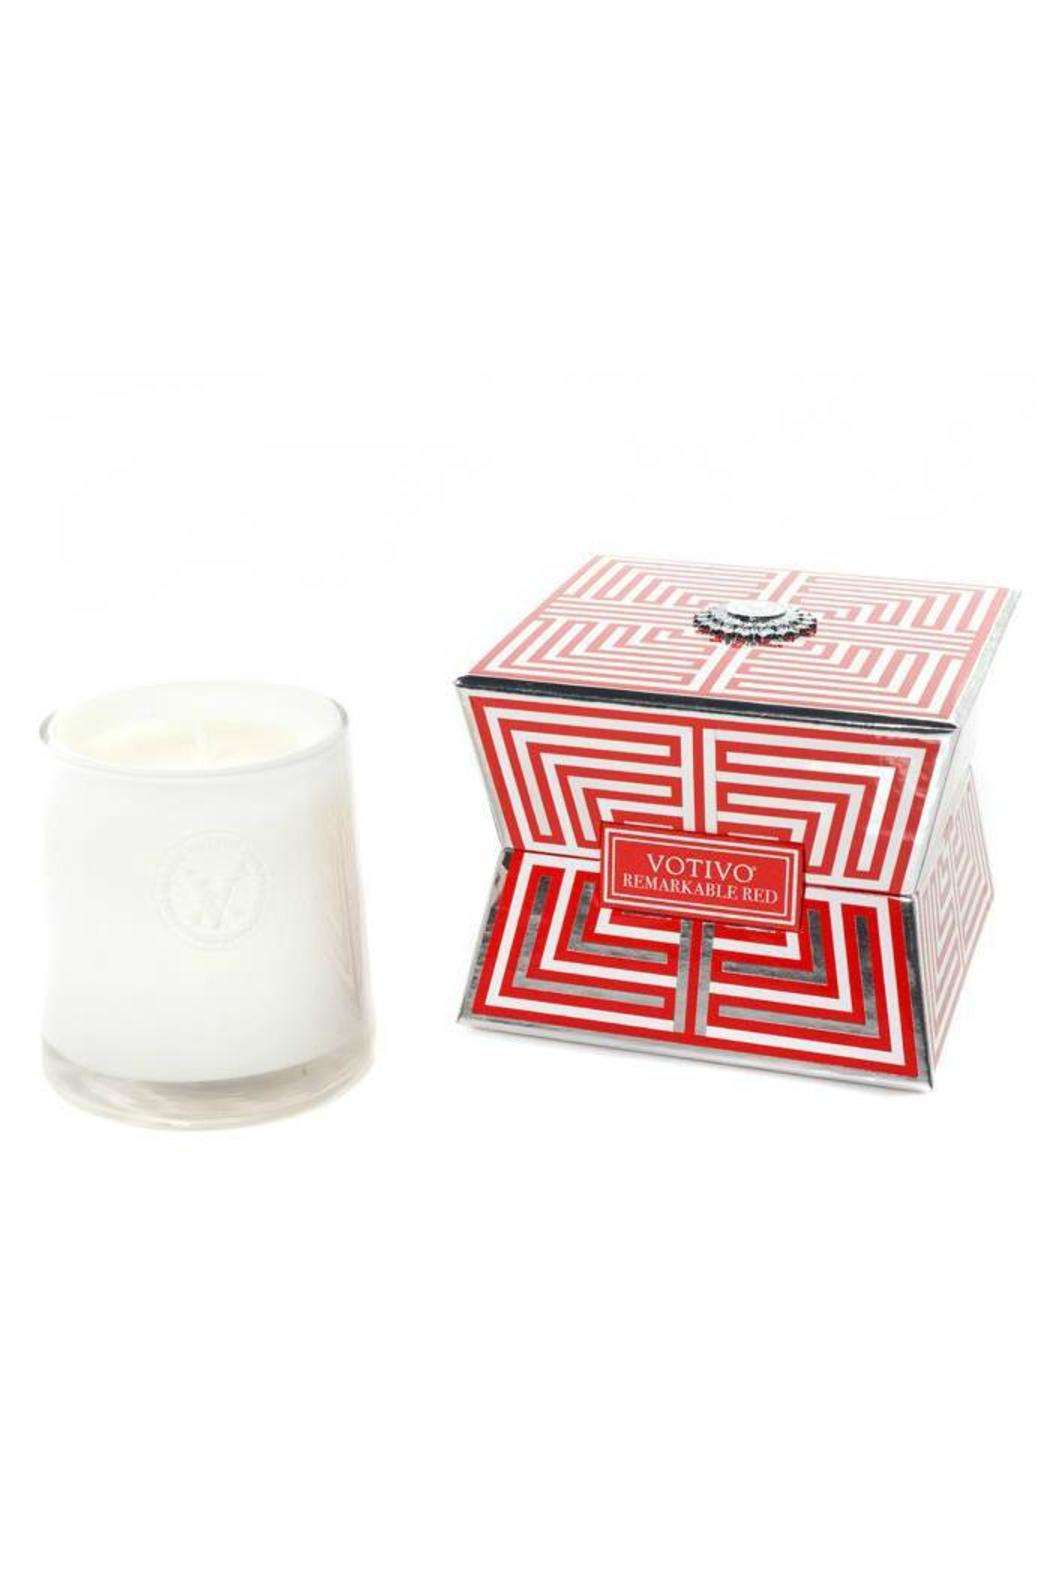 Votivo Aromatic Candles Remarkable Red Soziety Candle - Front Cropped Image